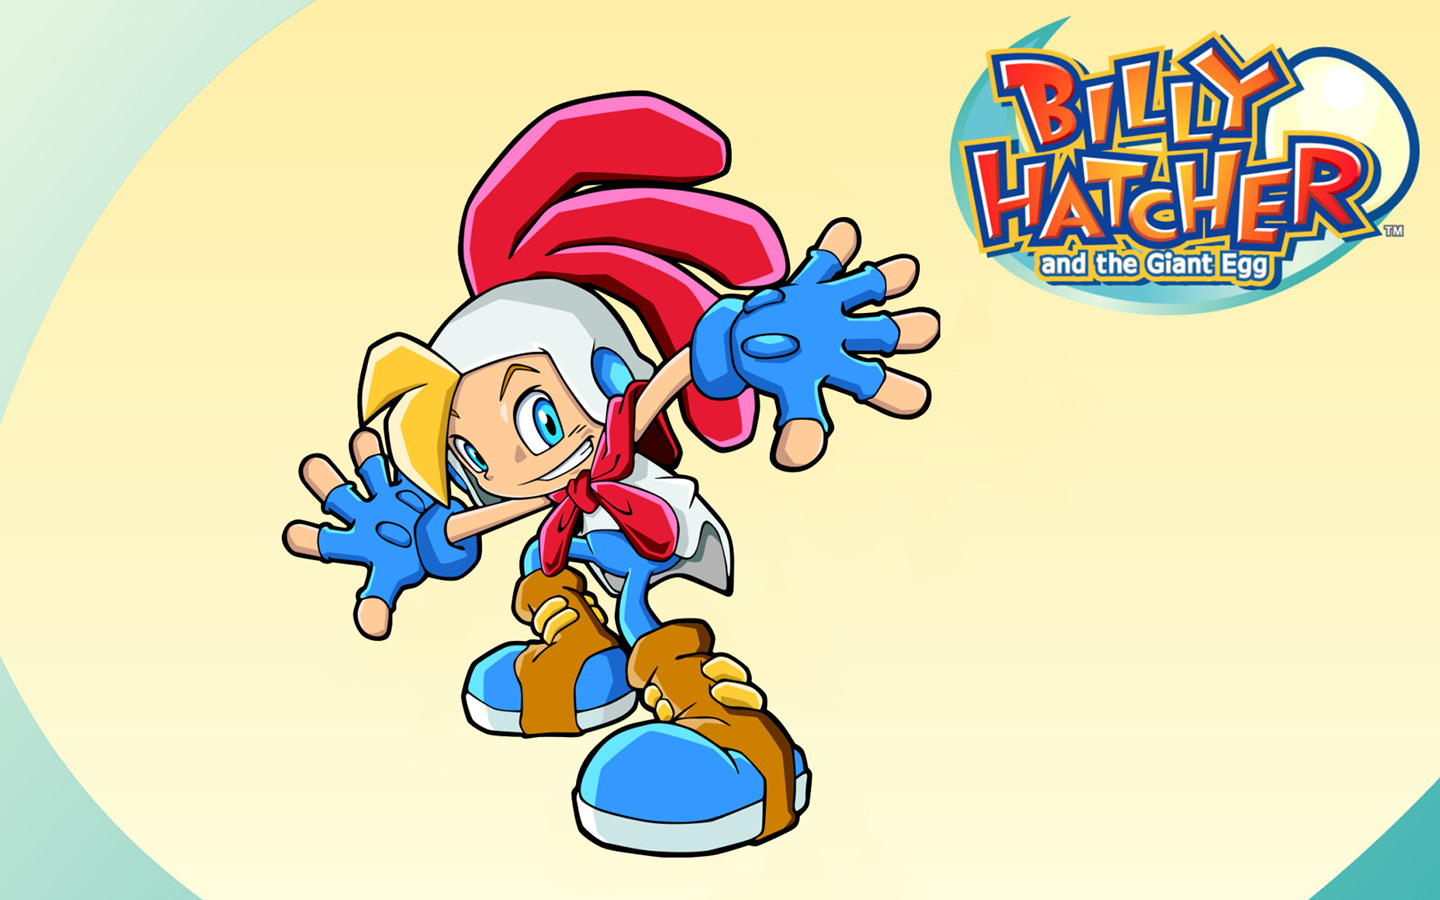 Free Billy Hatcher and the Giant Egg Wallpaper in 1440x900